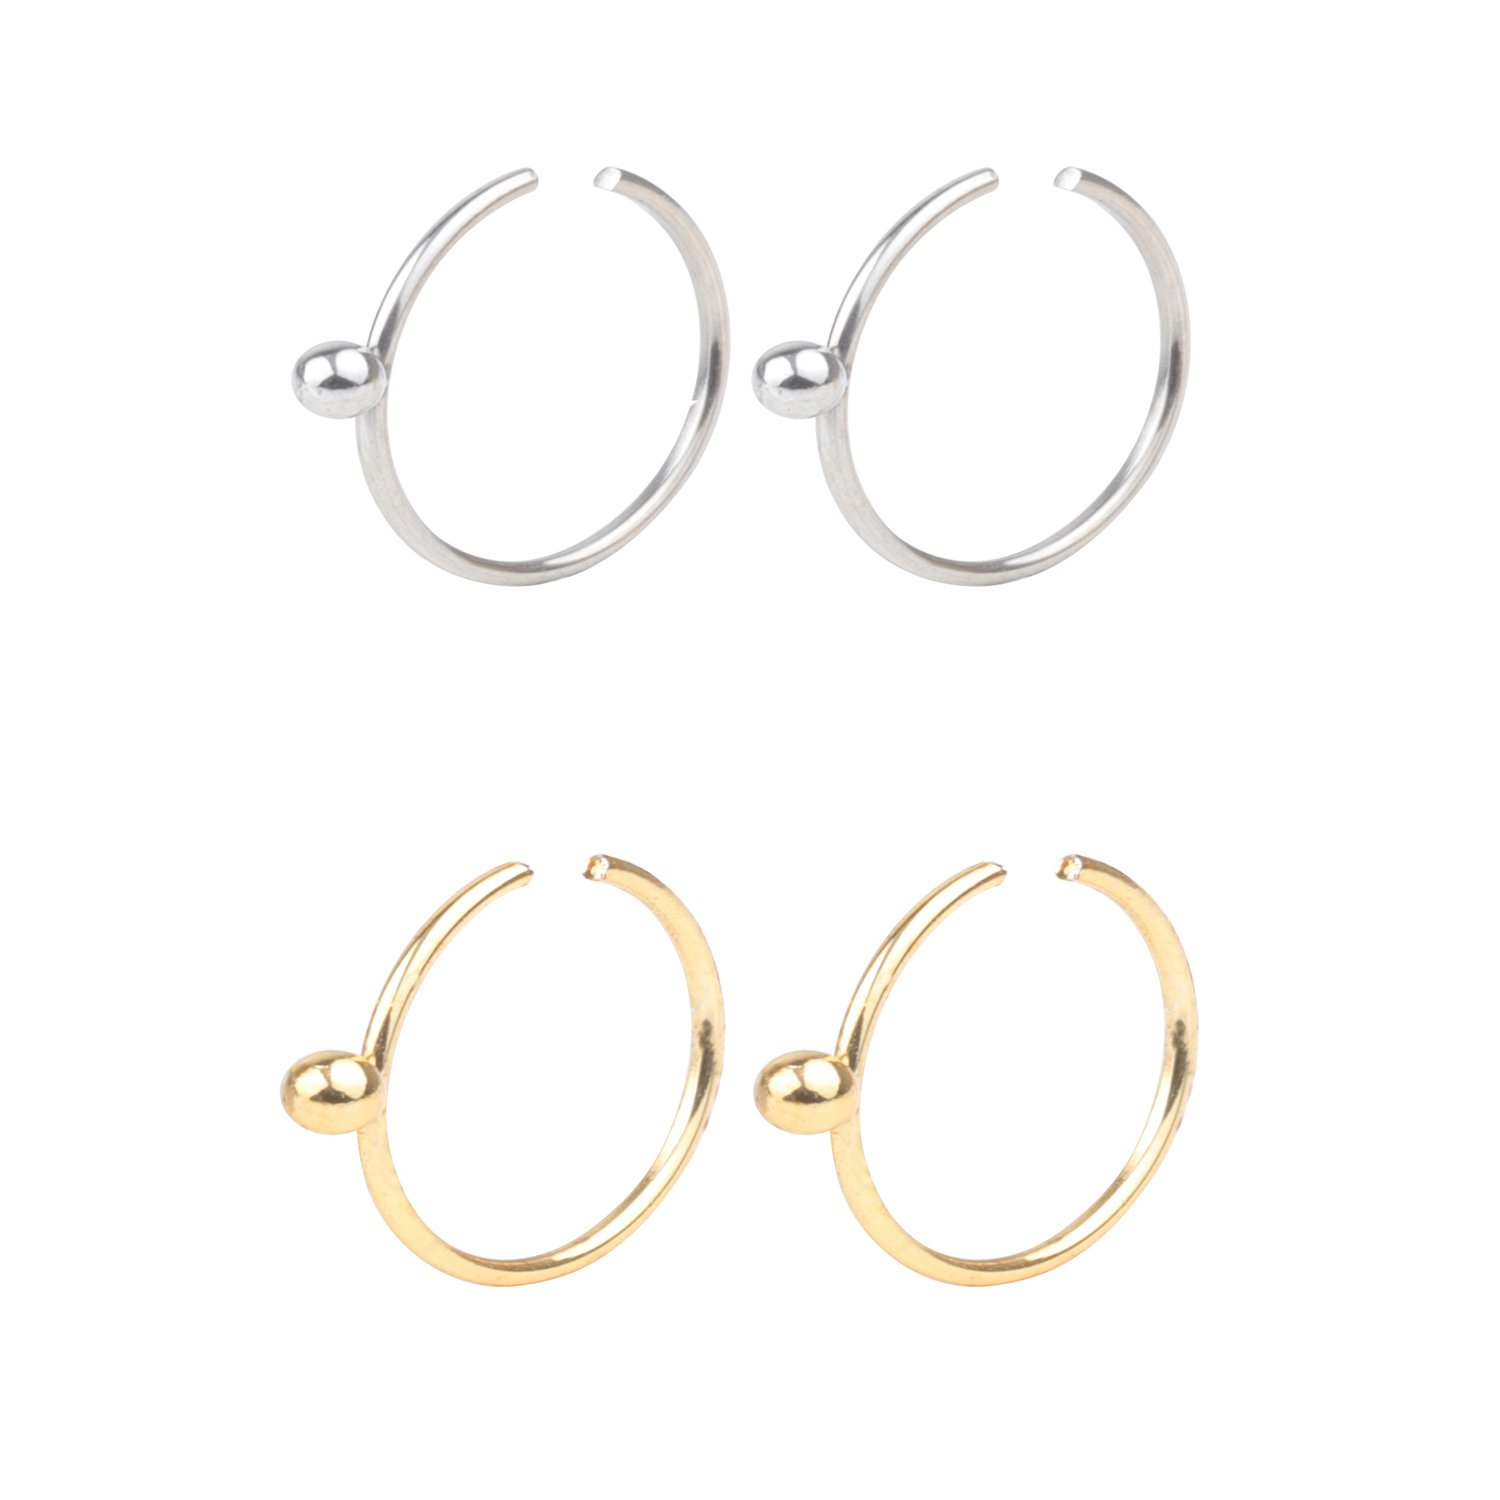 DRS 2-6pcs 22G Stainless Steel Non Pierced Clip on Closure Round Ring Fake Nose Lip Helix Cartilage Tragus Ear Hoop Piercing Body Jewelry 10mm